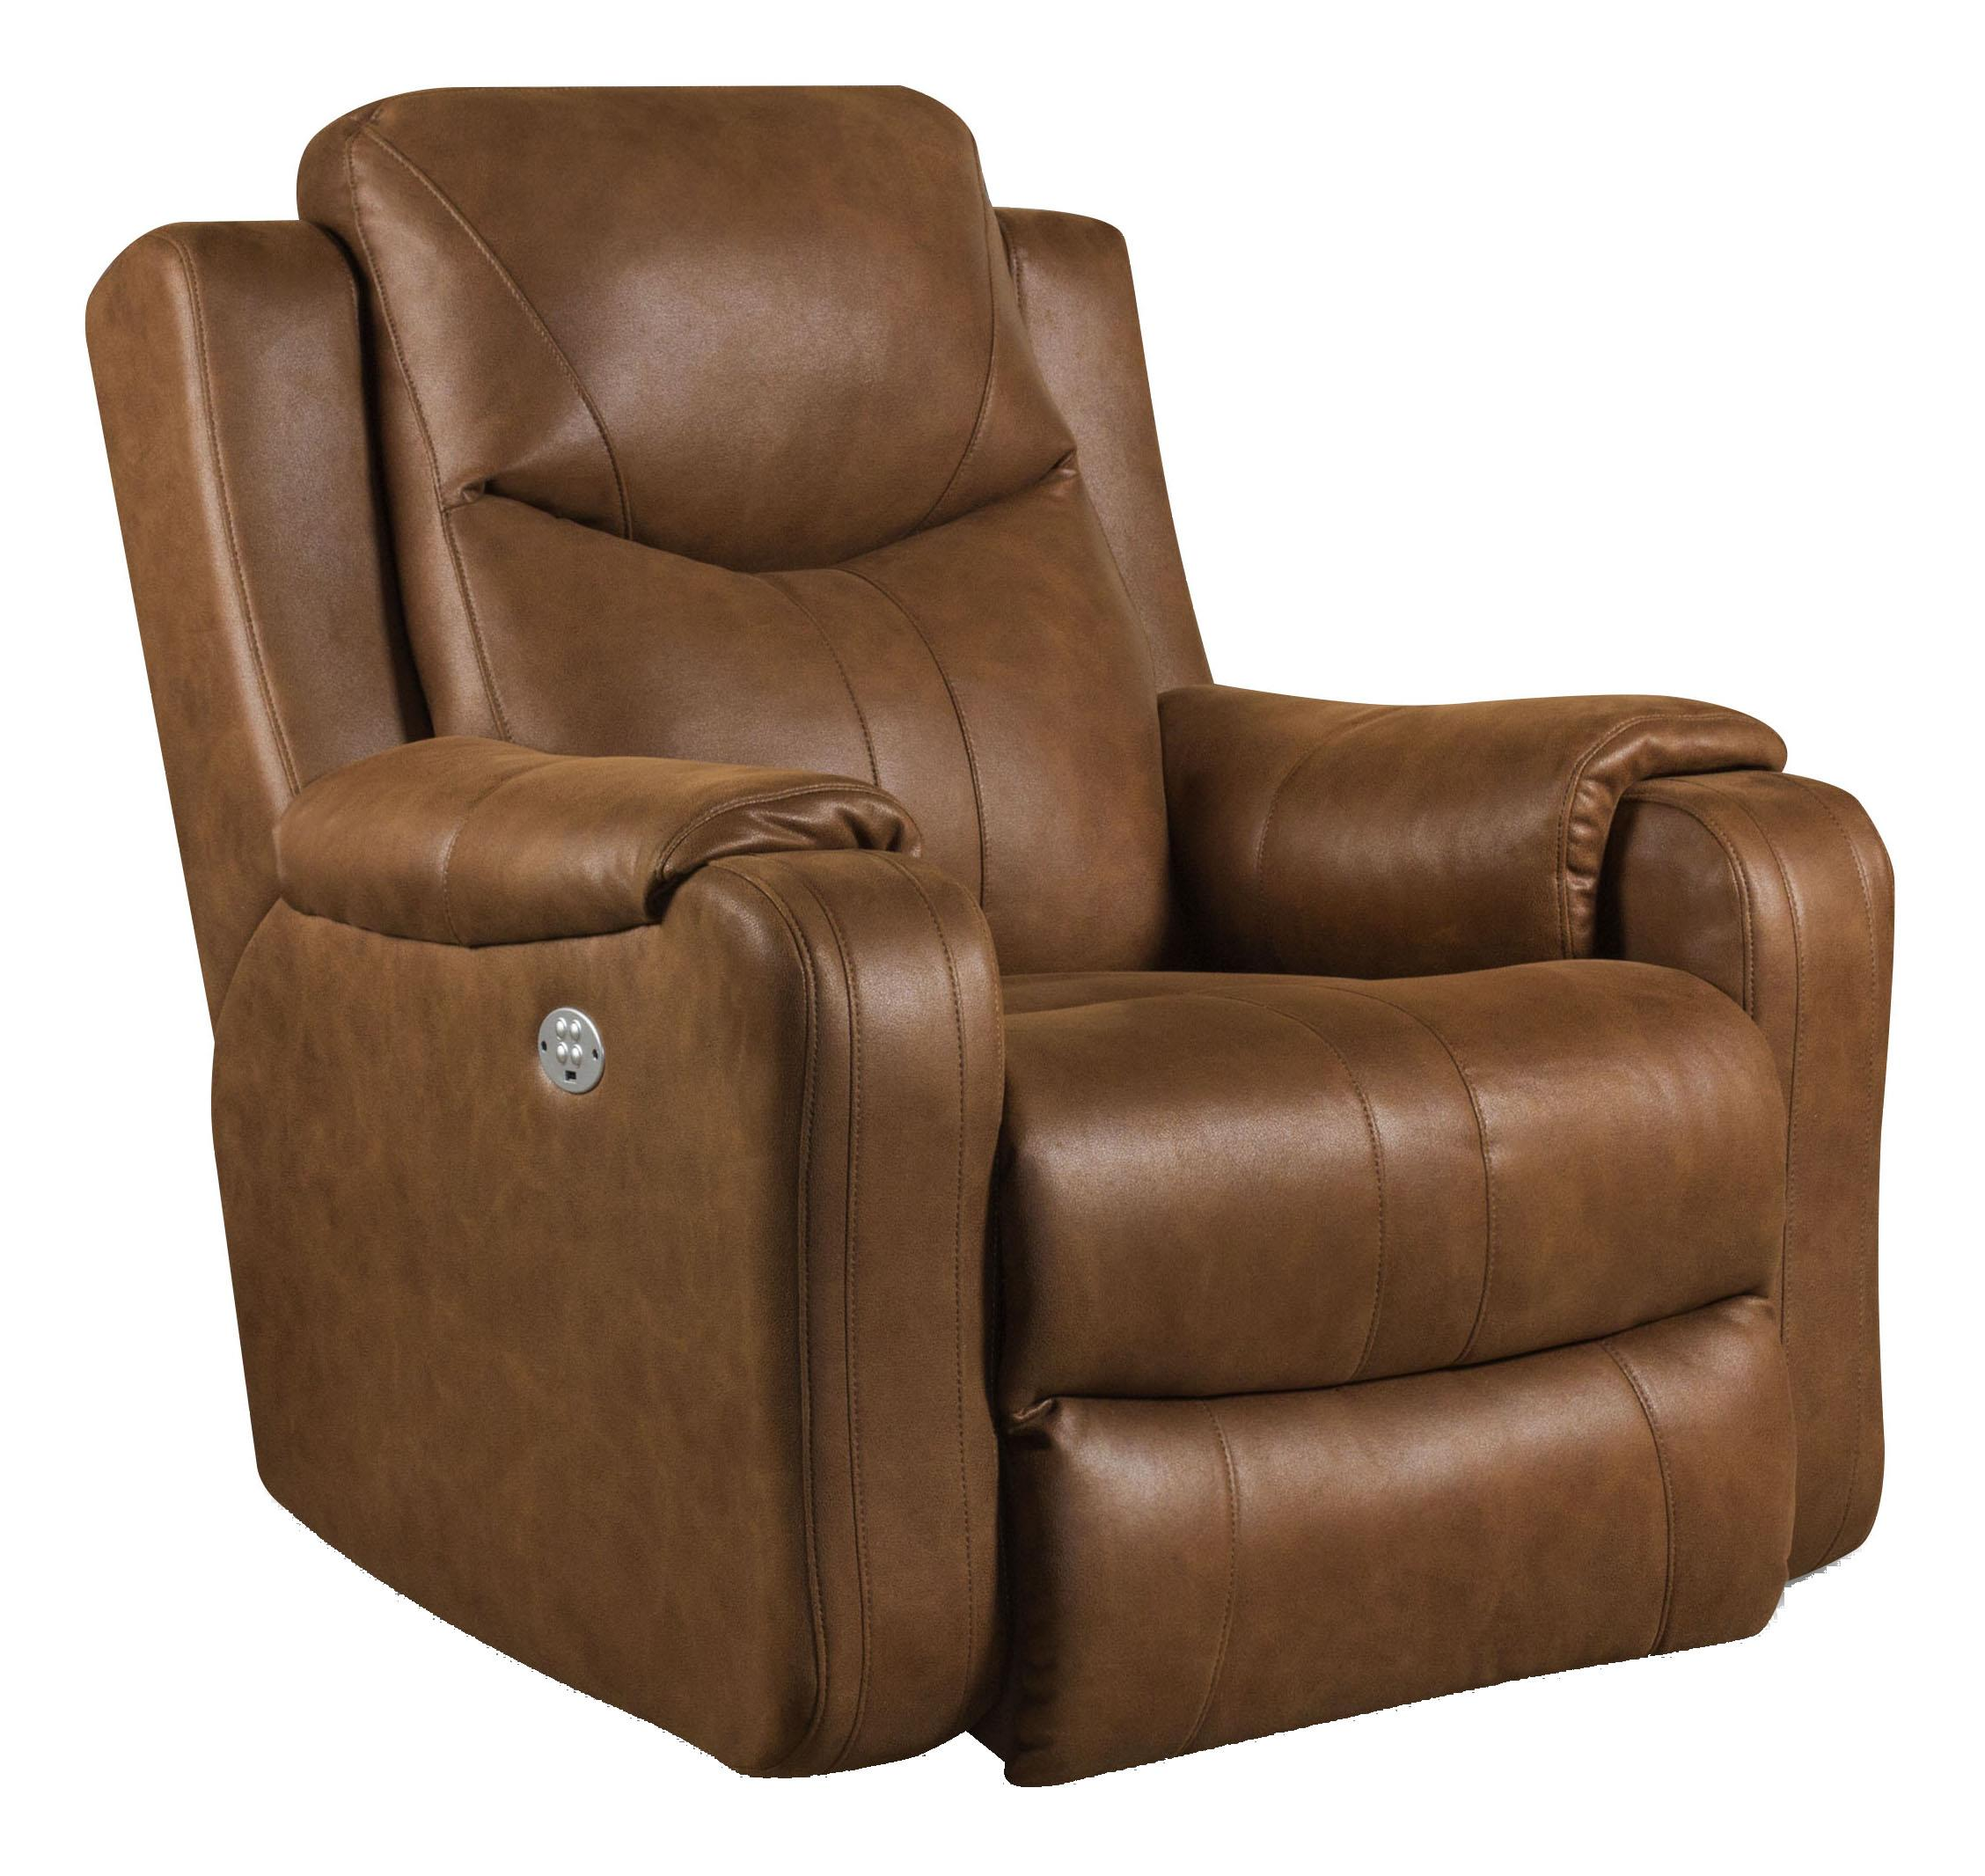 Marvel Rocker Recliner with Power Headrest by Southern Motion at Sparks HomeStore